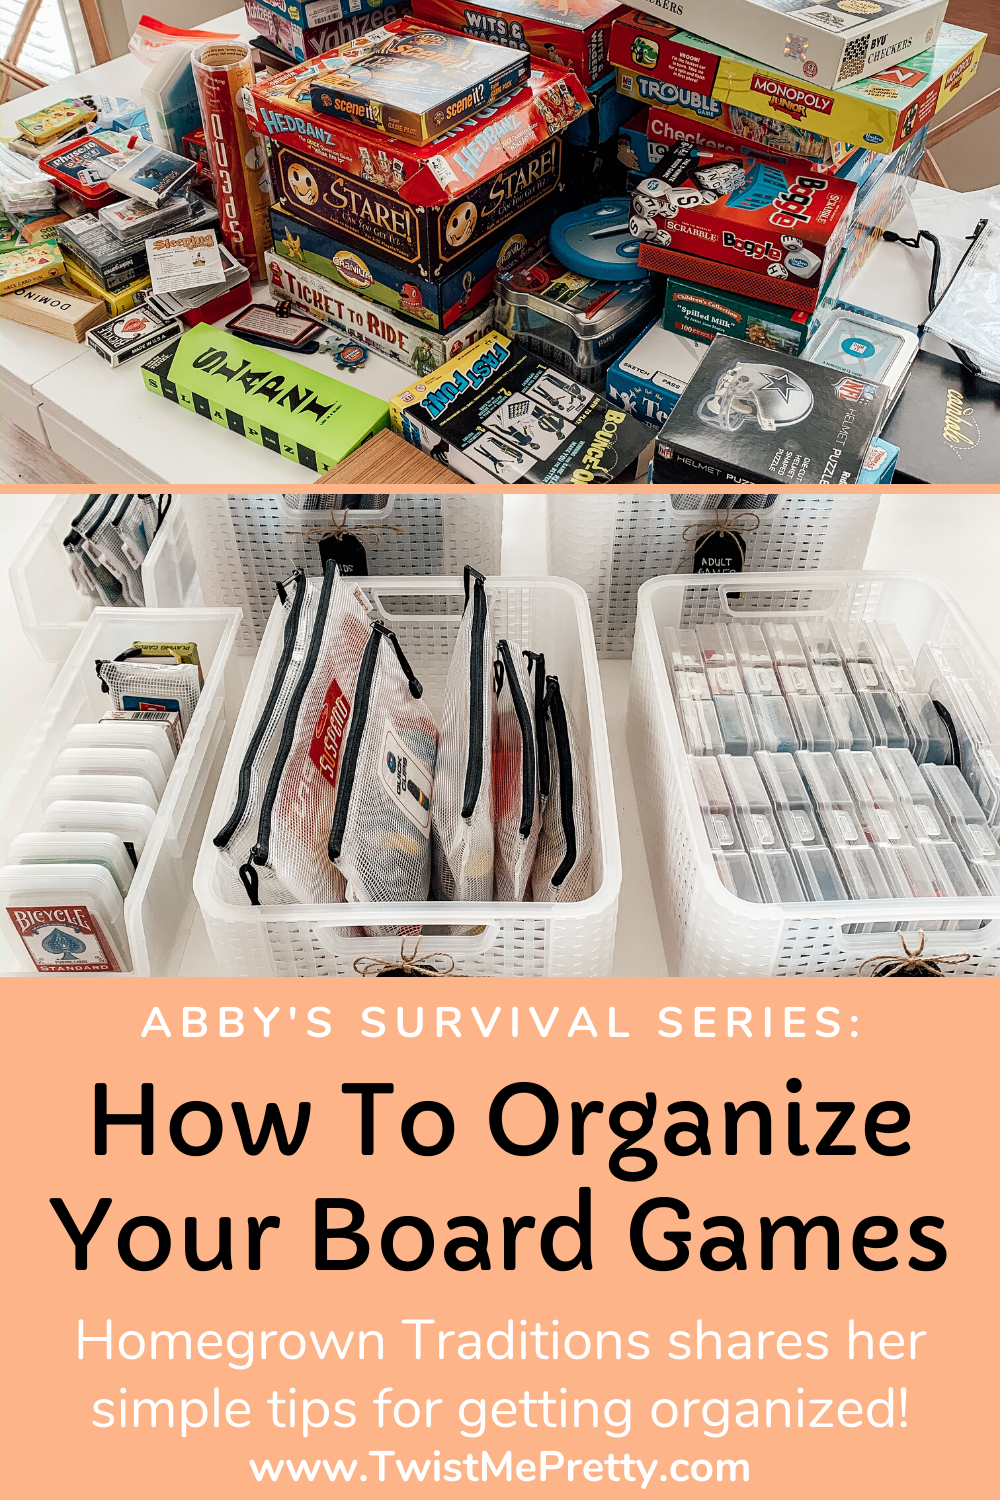 Abby's Survival Series- How to Organize Your Board Games by Homegrown Traditions. www.TwistMePretty.com